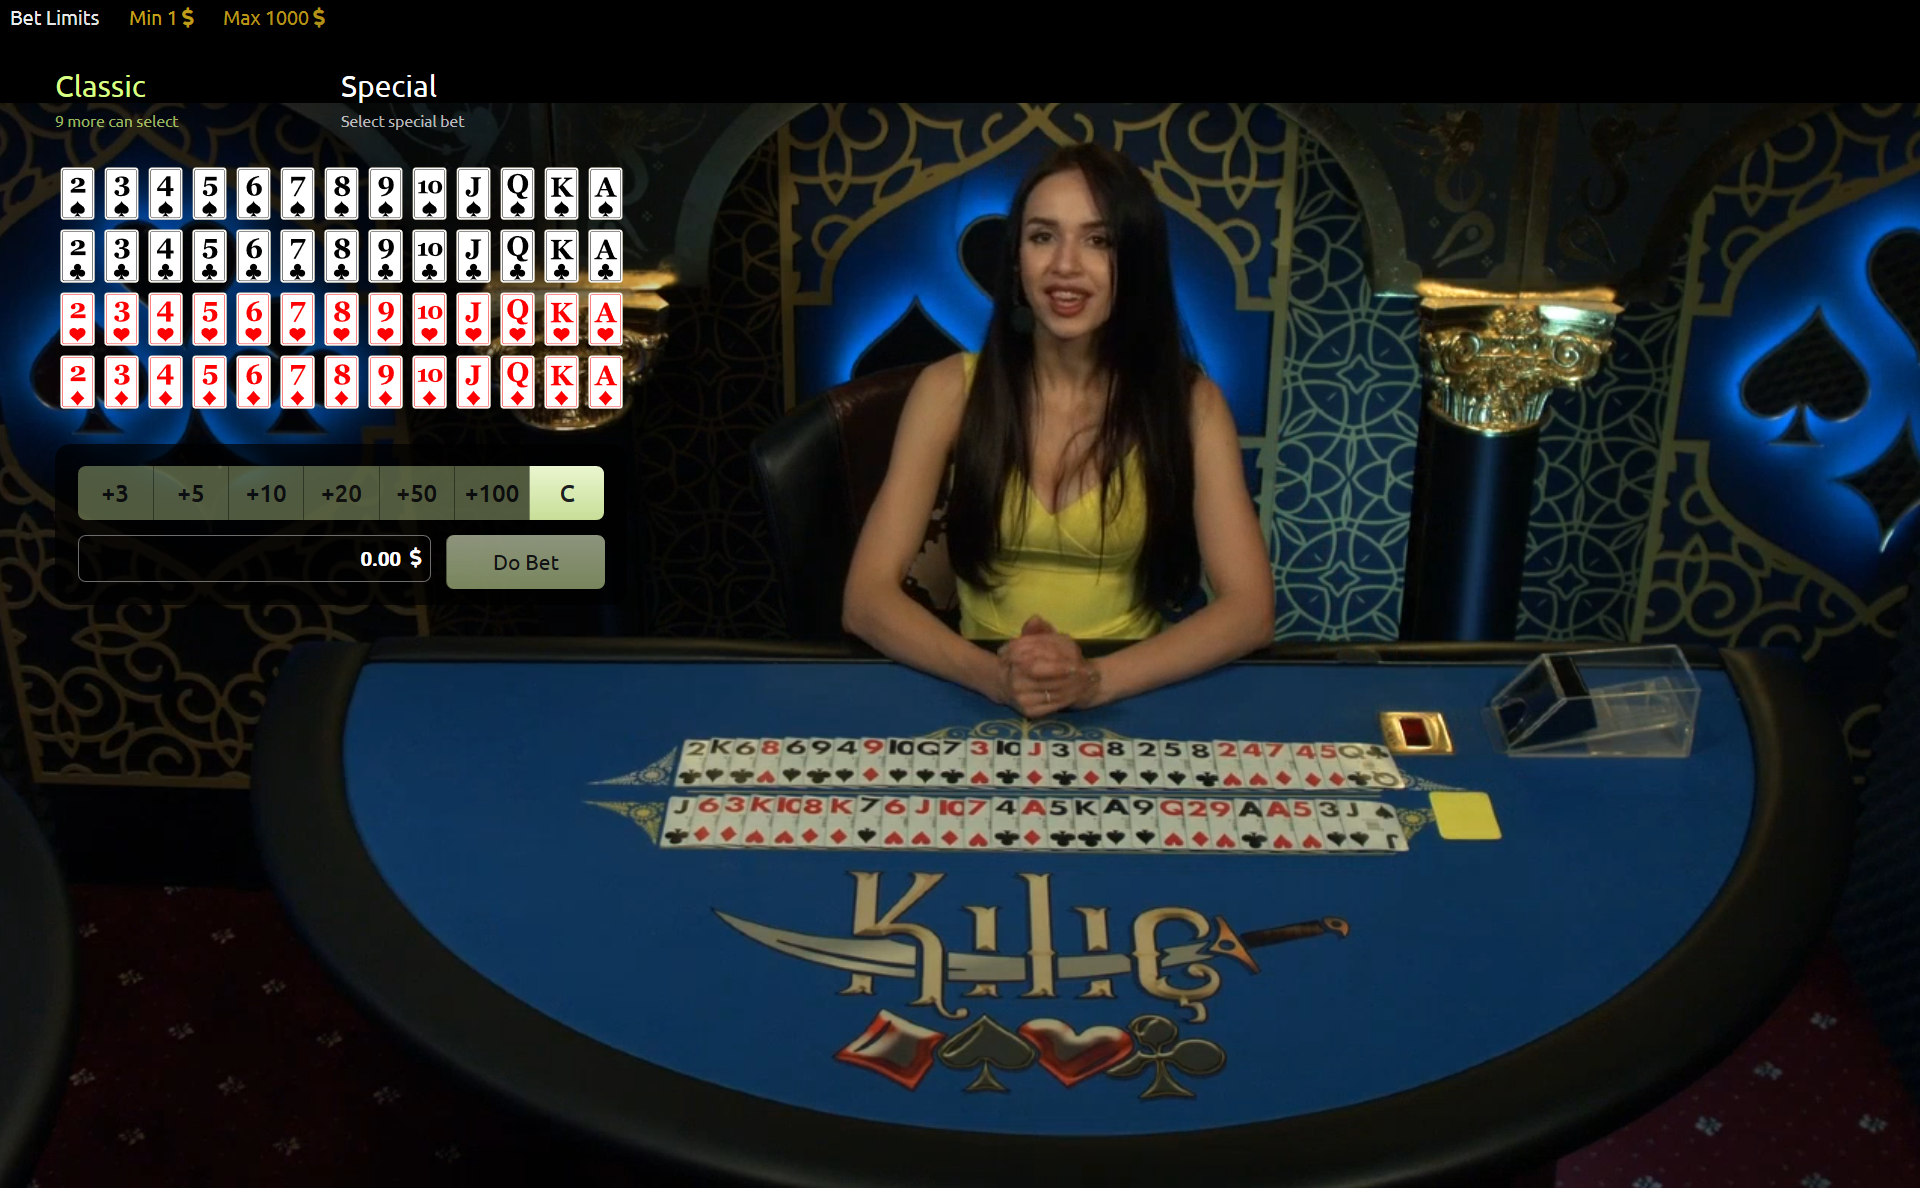 Live table game Kilic use all 52-cards each round. Here the dealer show all cards used in Kilic.